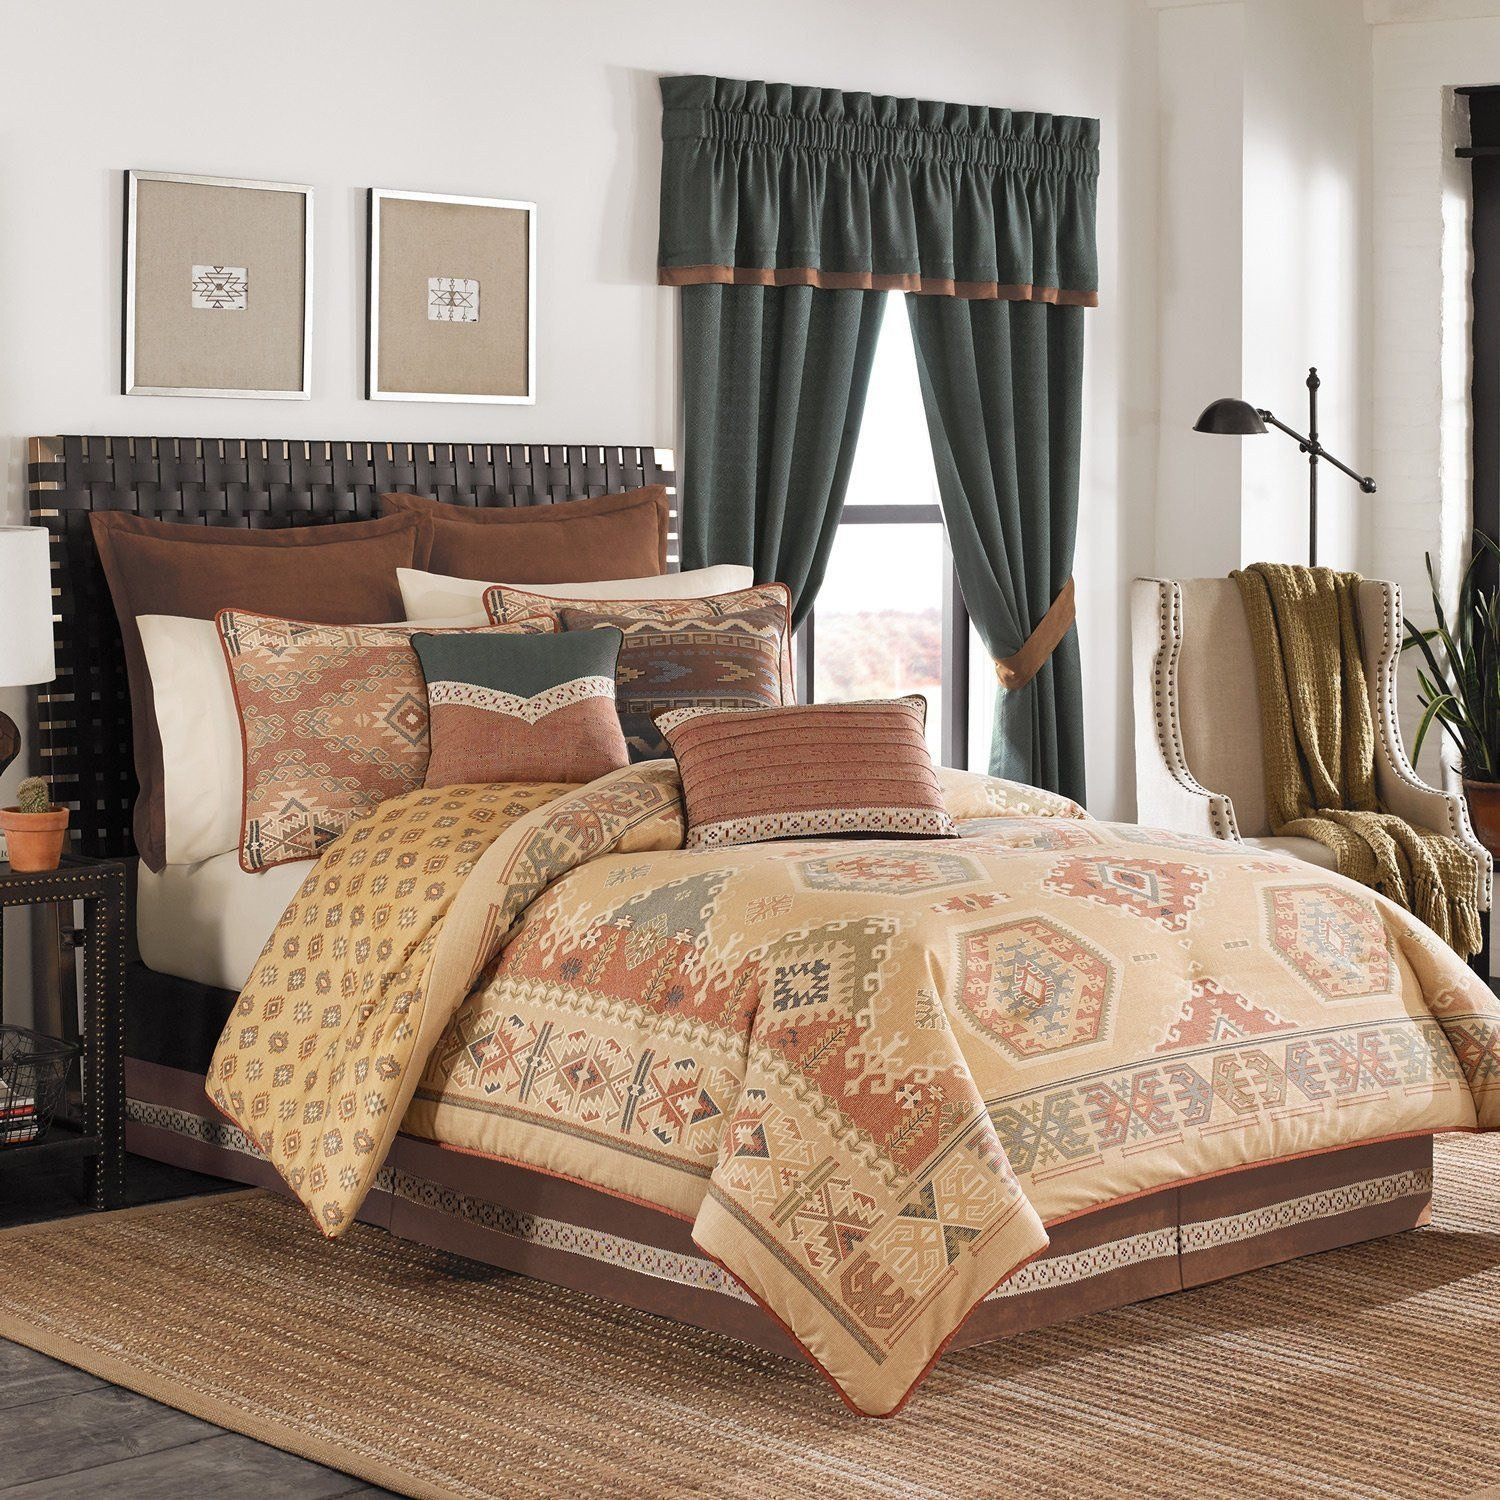 Croscill Arizona 4 Pc Comforter Set King